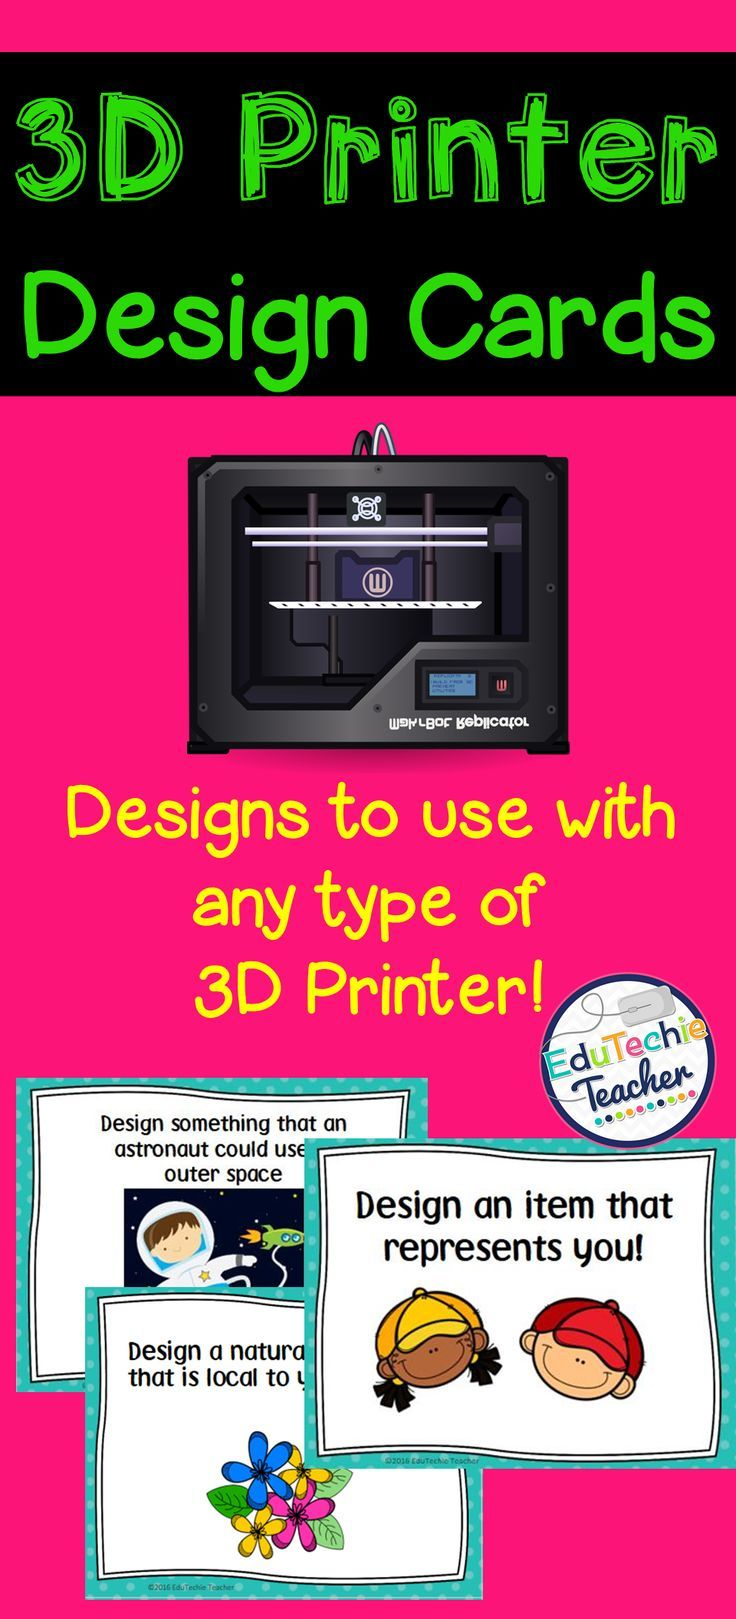 3D Printer Design Cards- Great ideas for students to design using CAD design programs and print on a 3D printer.